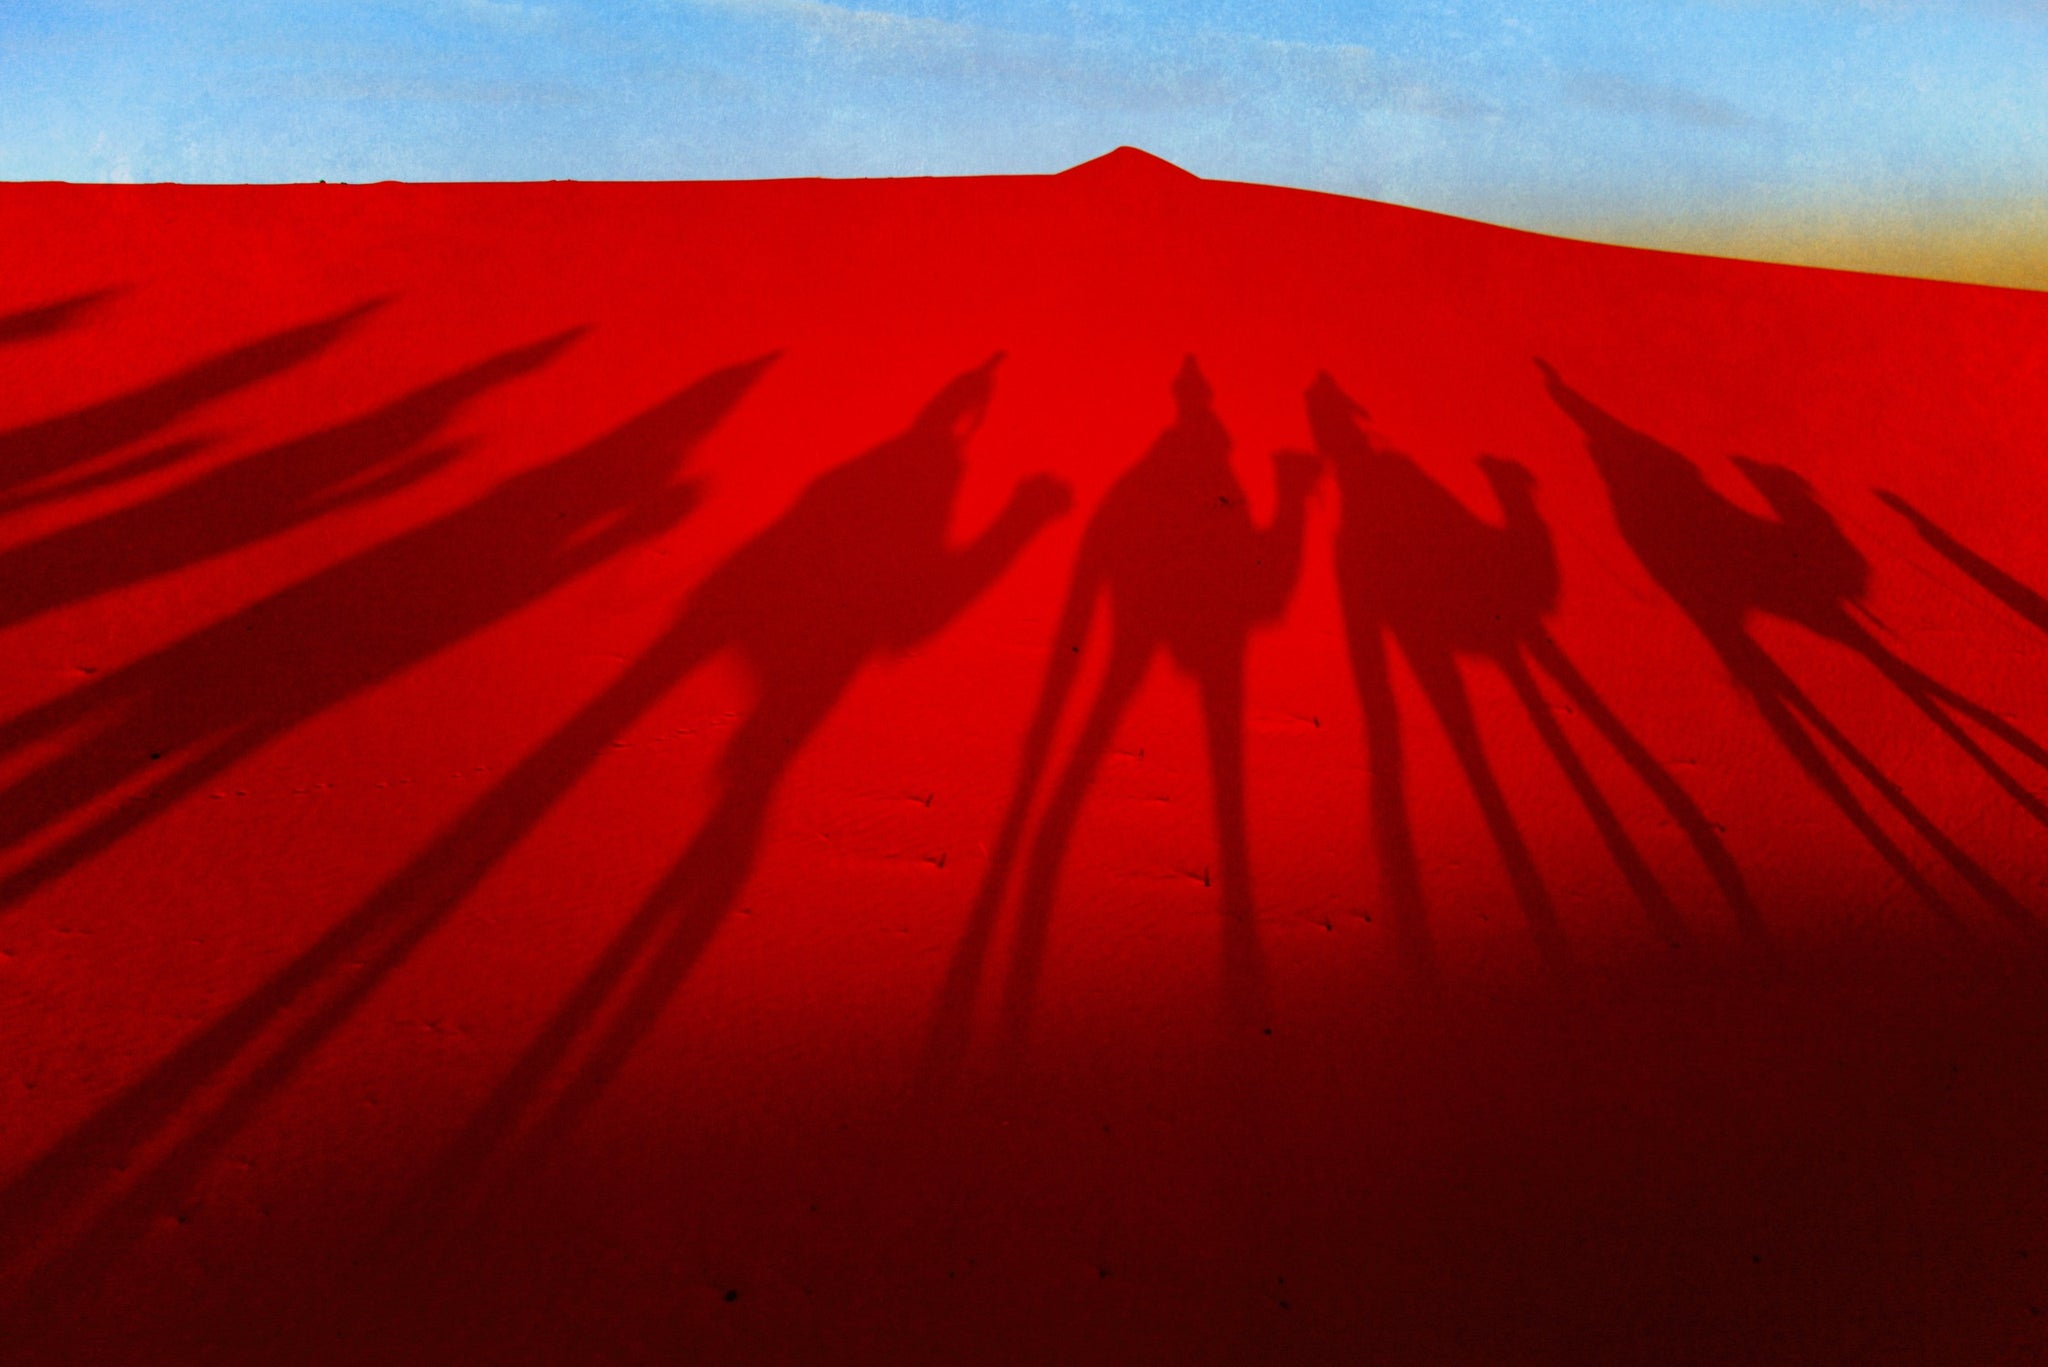 Sahara camel trek,shadows in  red sand, limited edition photograph